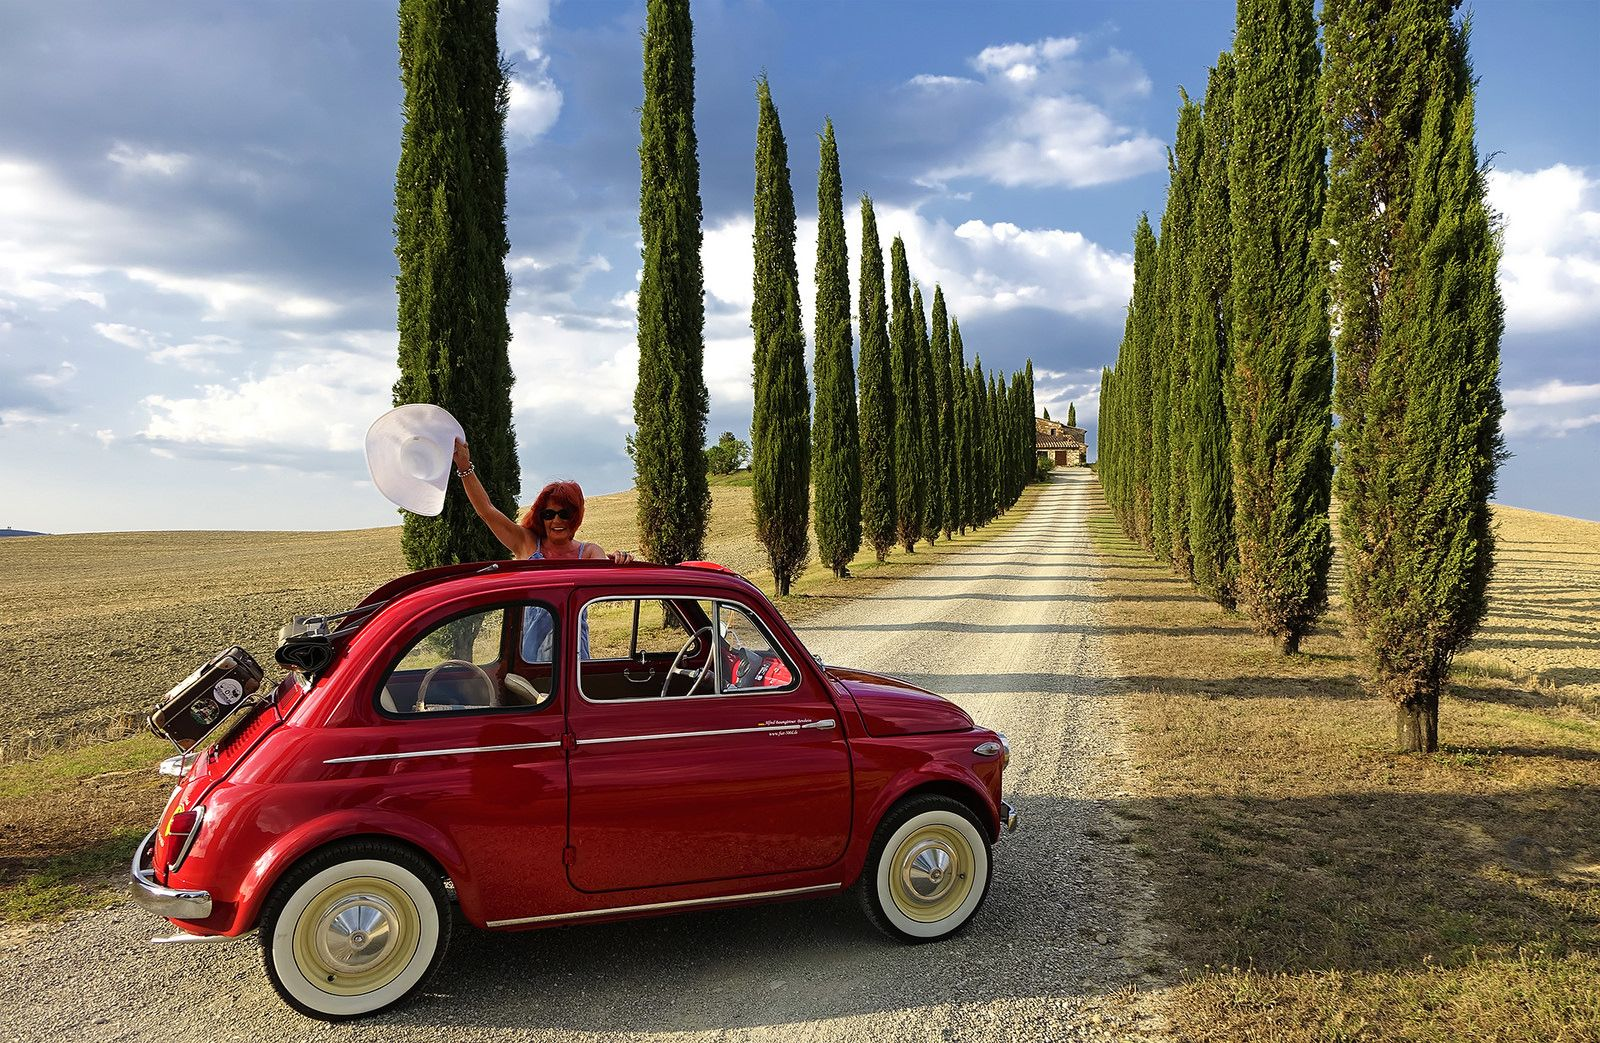 With Oldtimer Fiat 500 in Tuscany  Florence and Tuscany